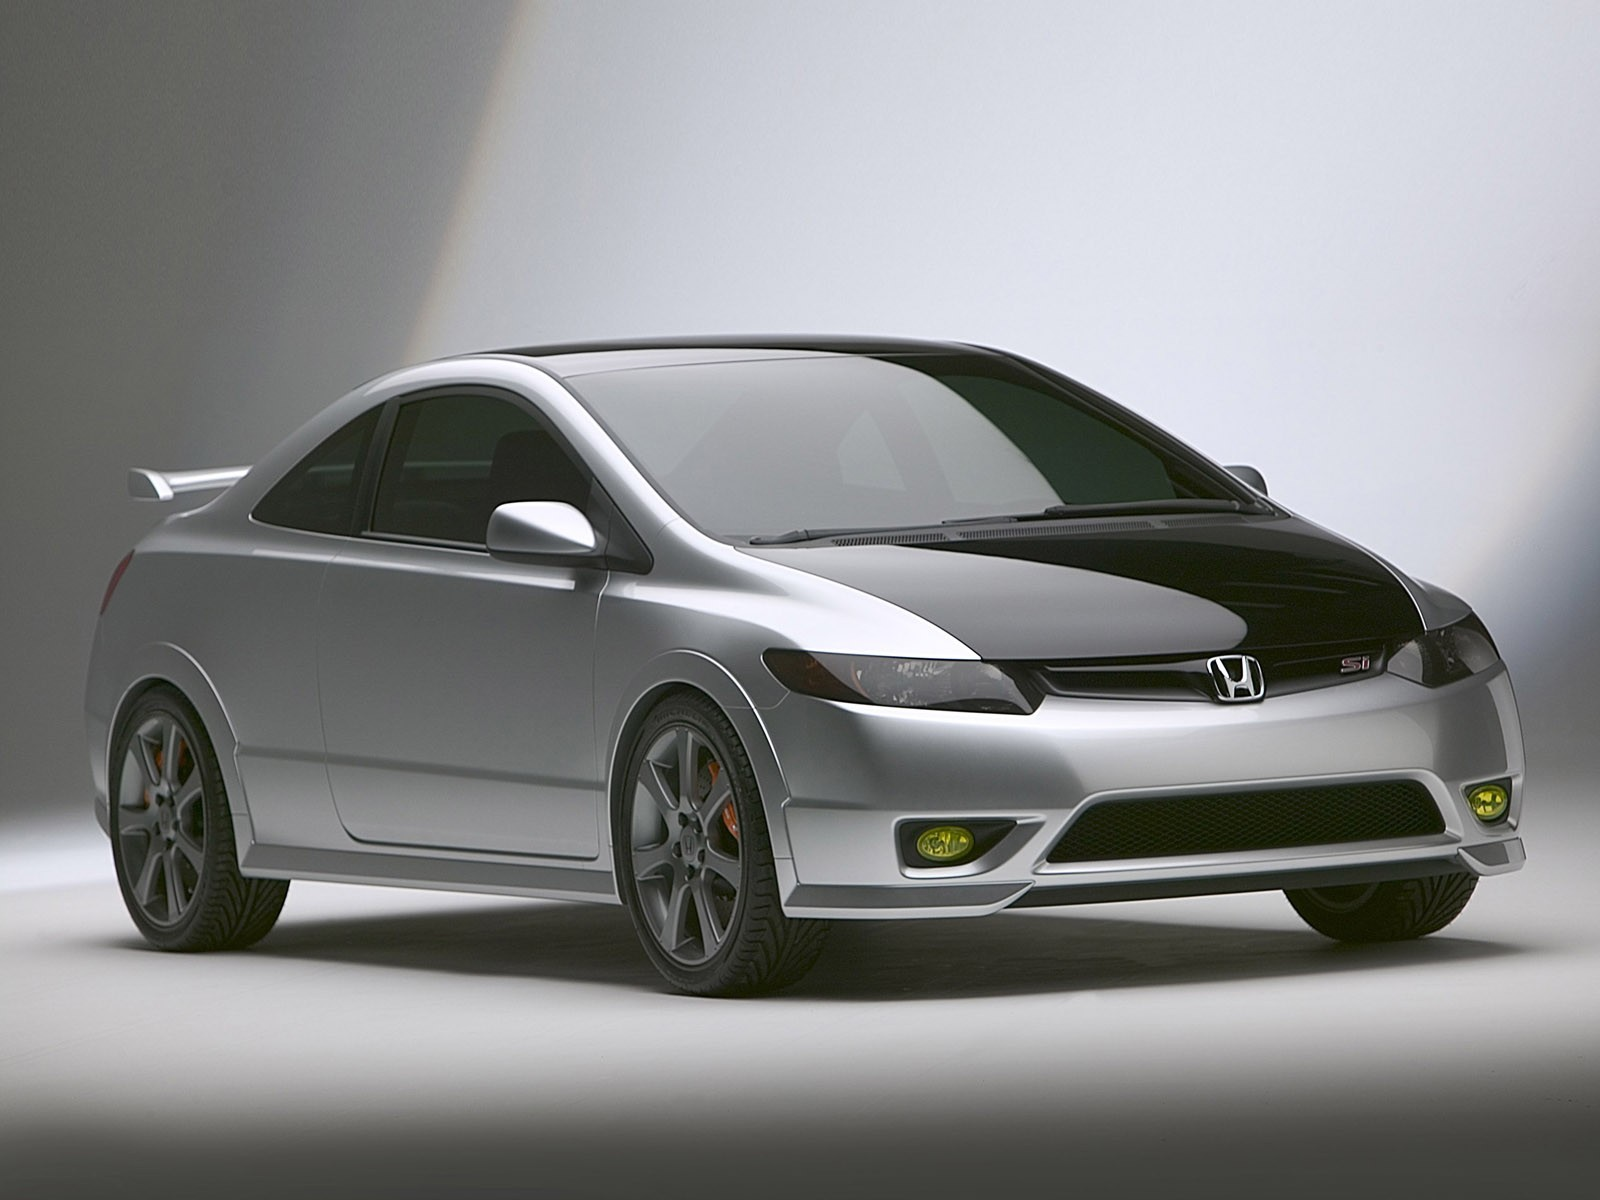 2005 honda civic si concept review top speed. Black Bedroom Furniture Sets. Home Design Ideas